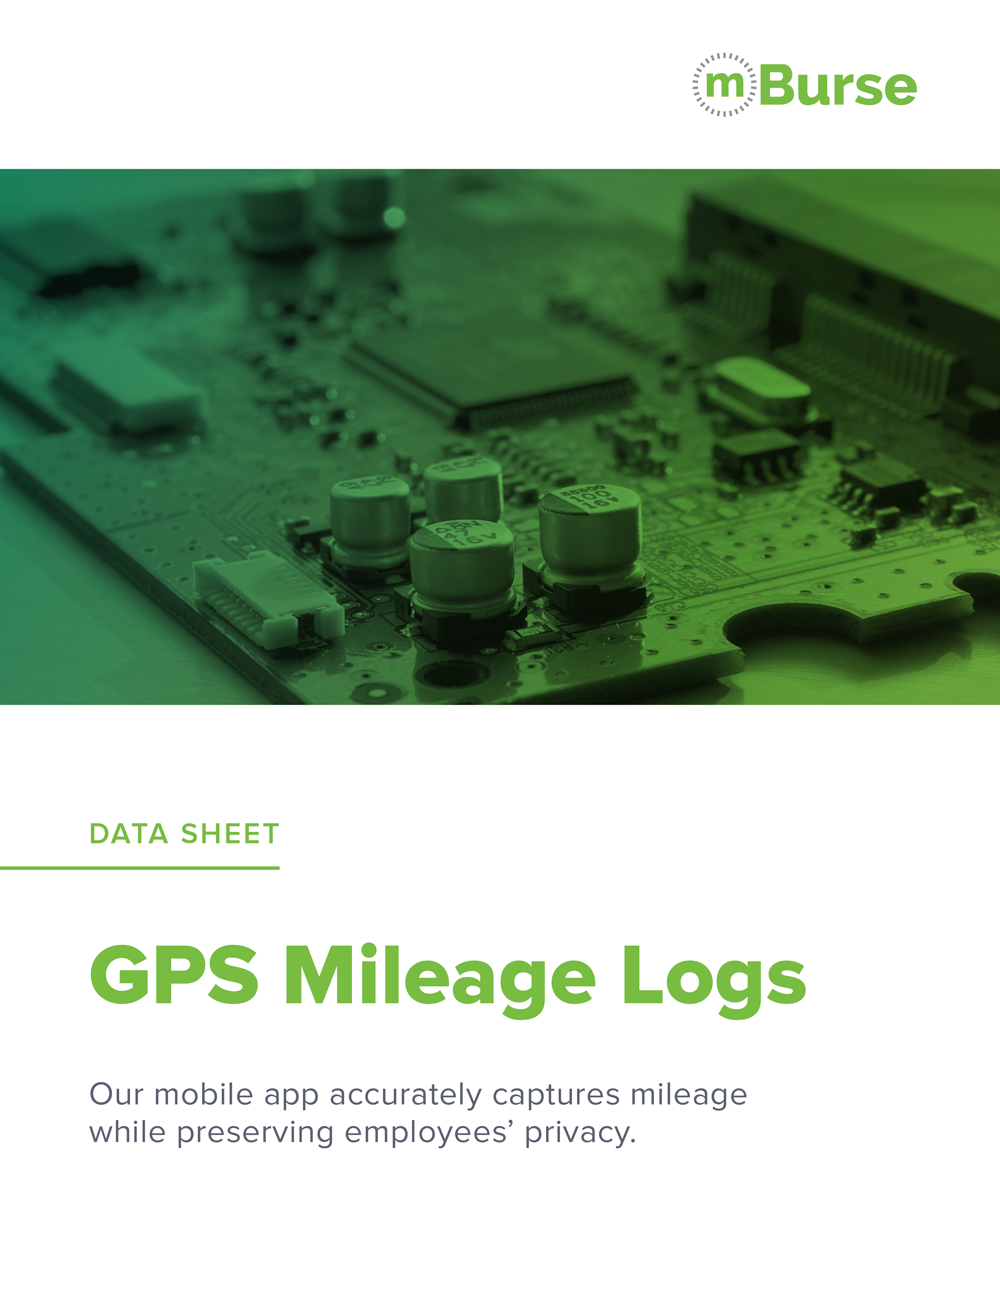 mBurse GPS Mileage Log data sheet